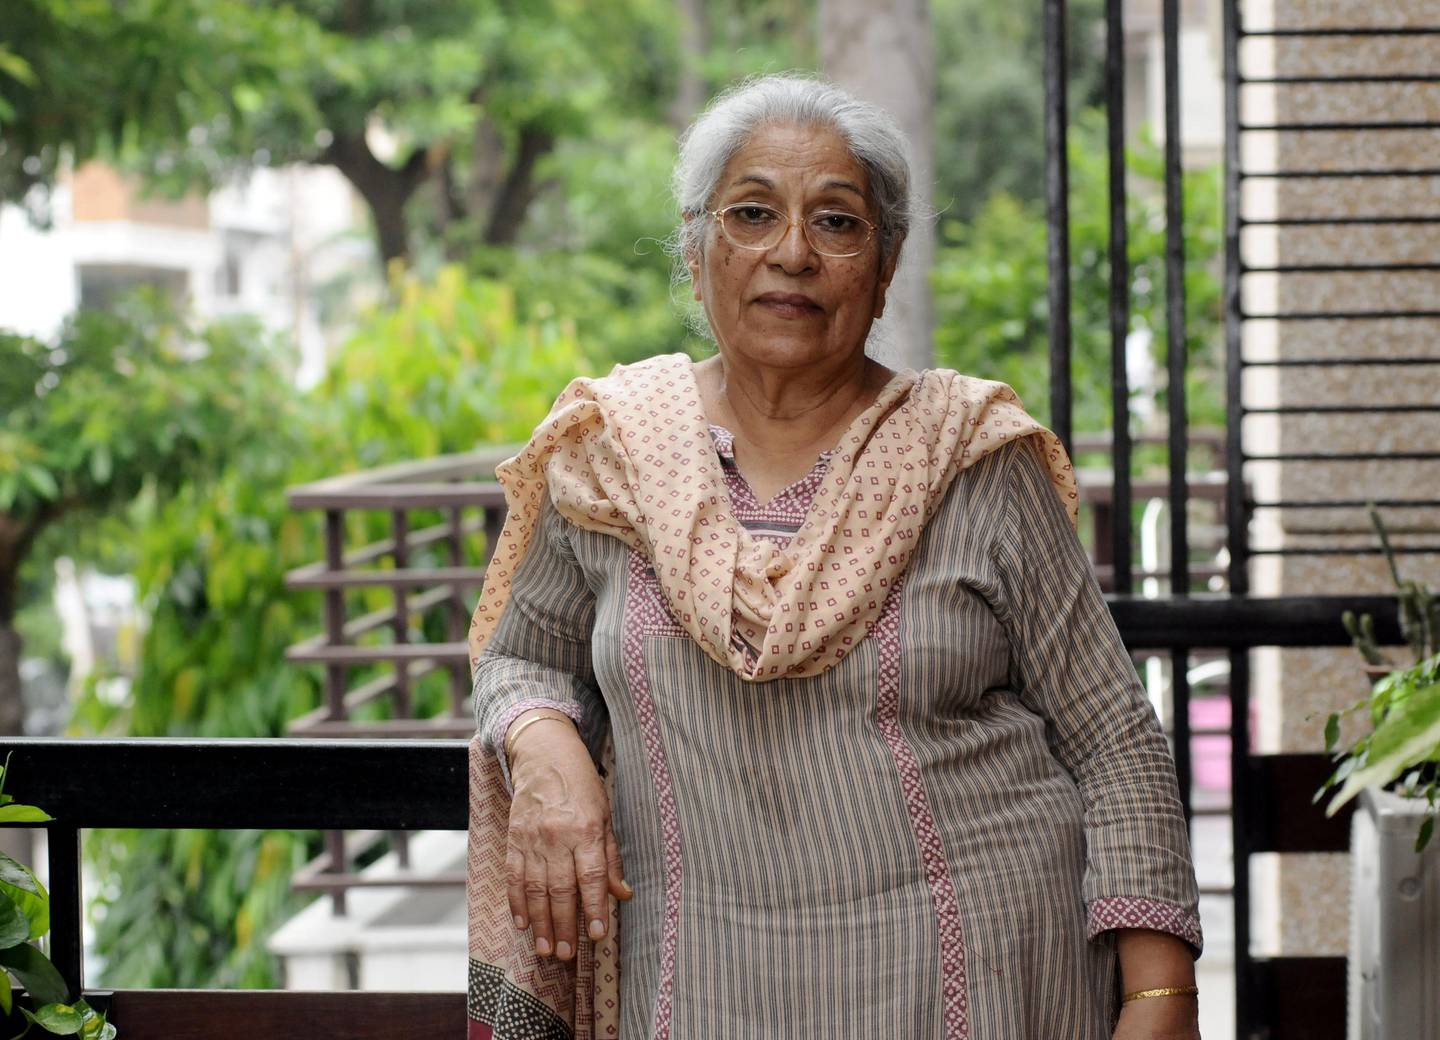 Shashi Talwar poses at her house in New Delhi, India, Wednesday, August 9, 2017.